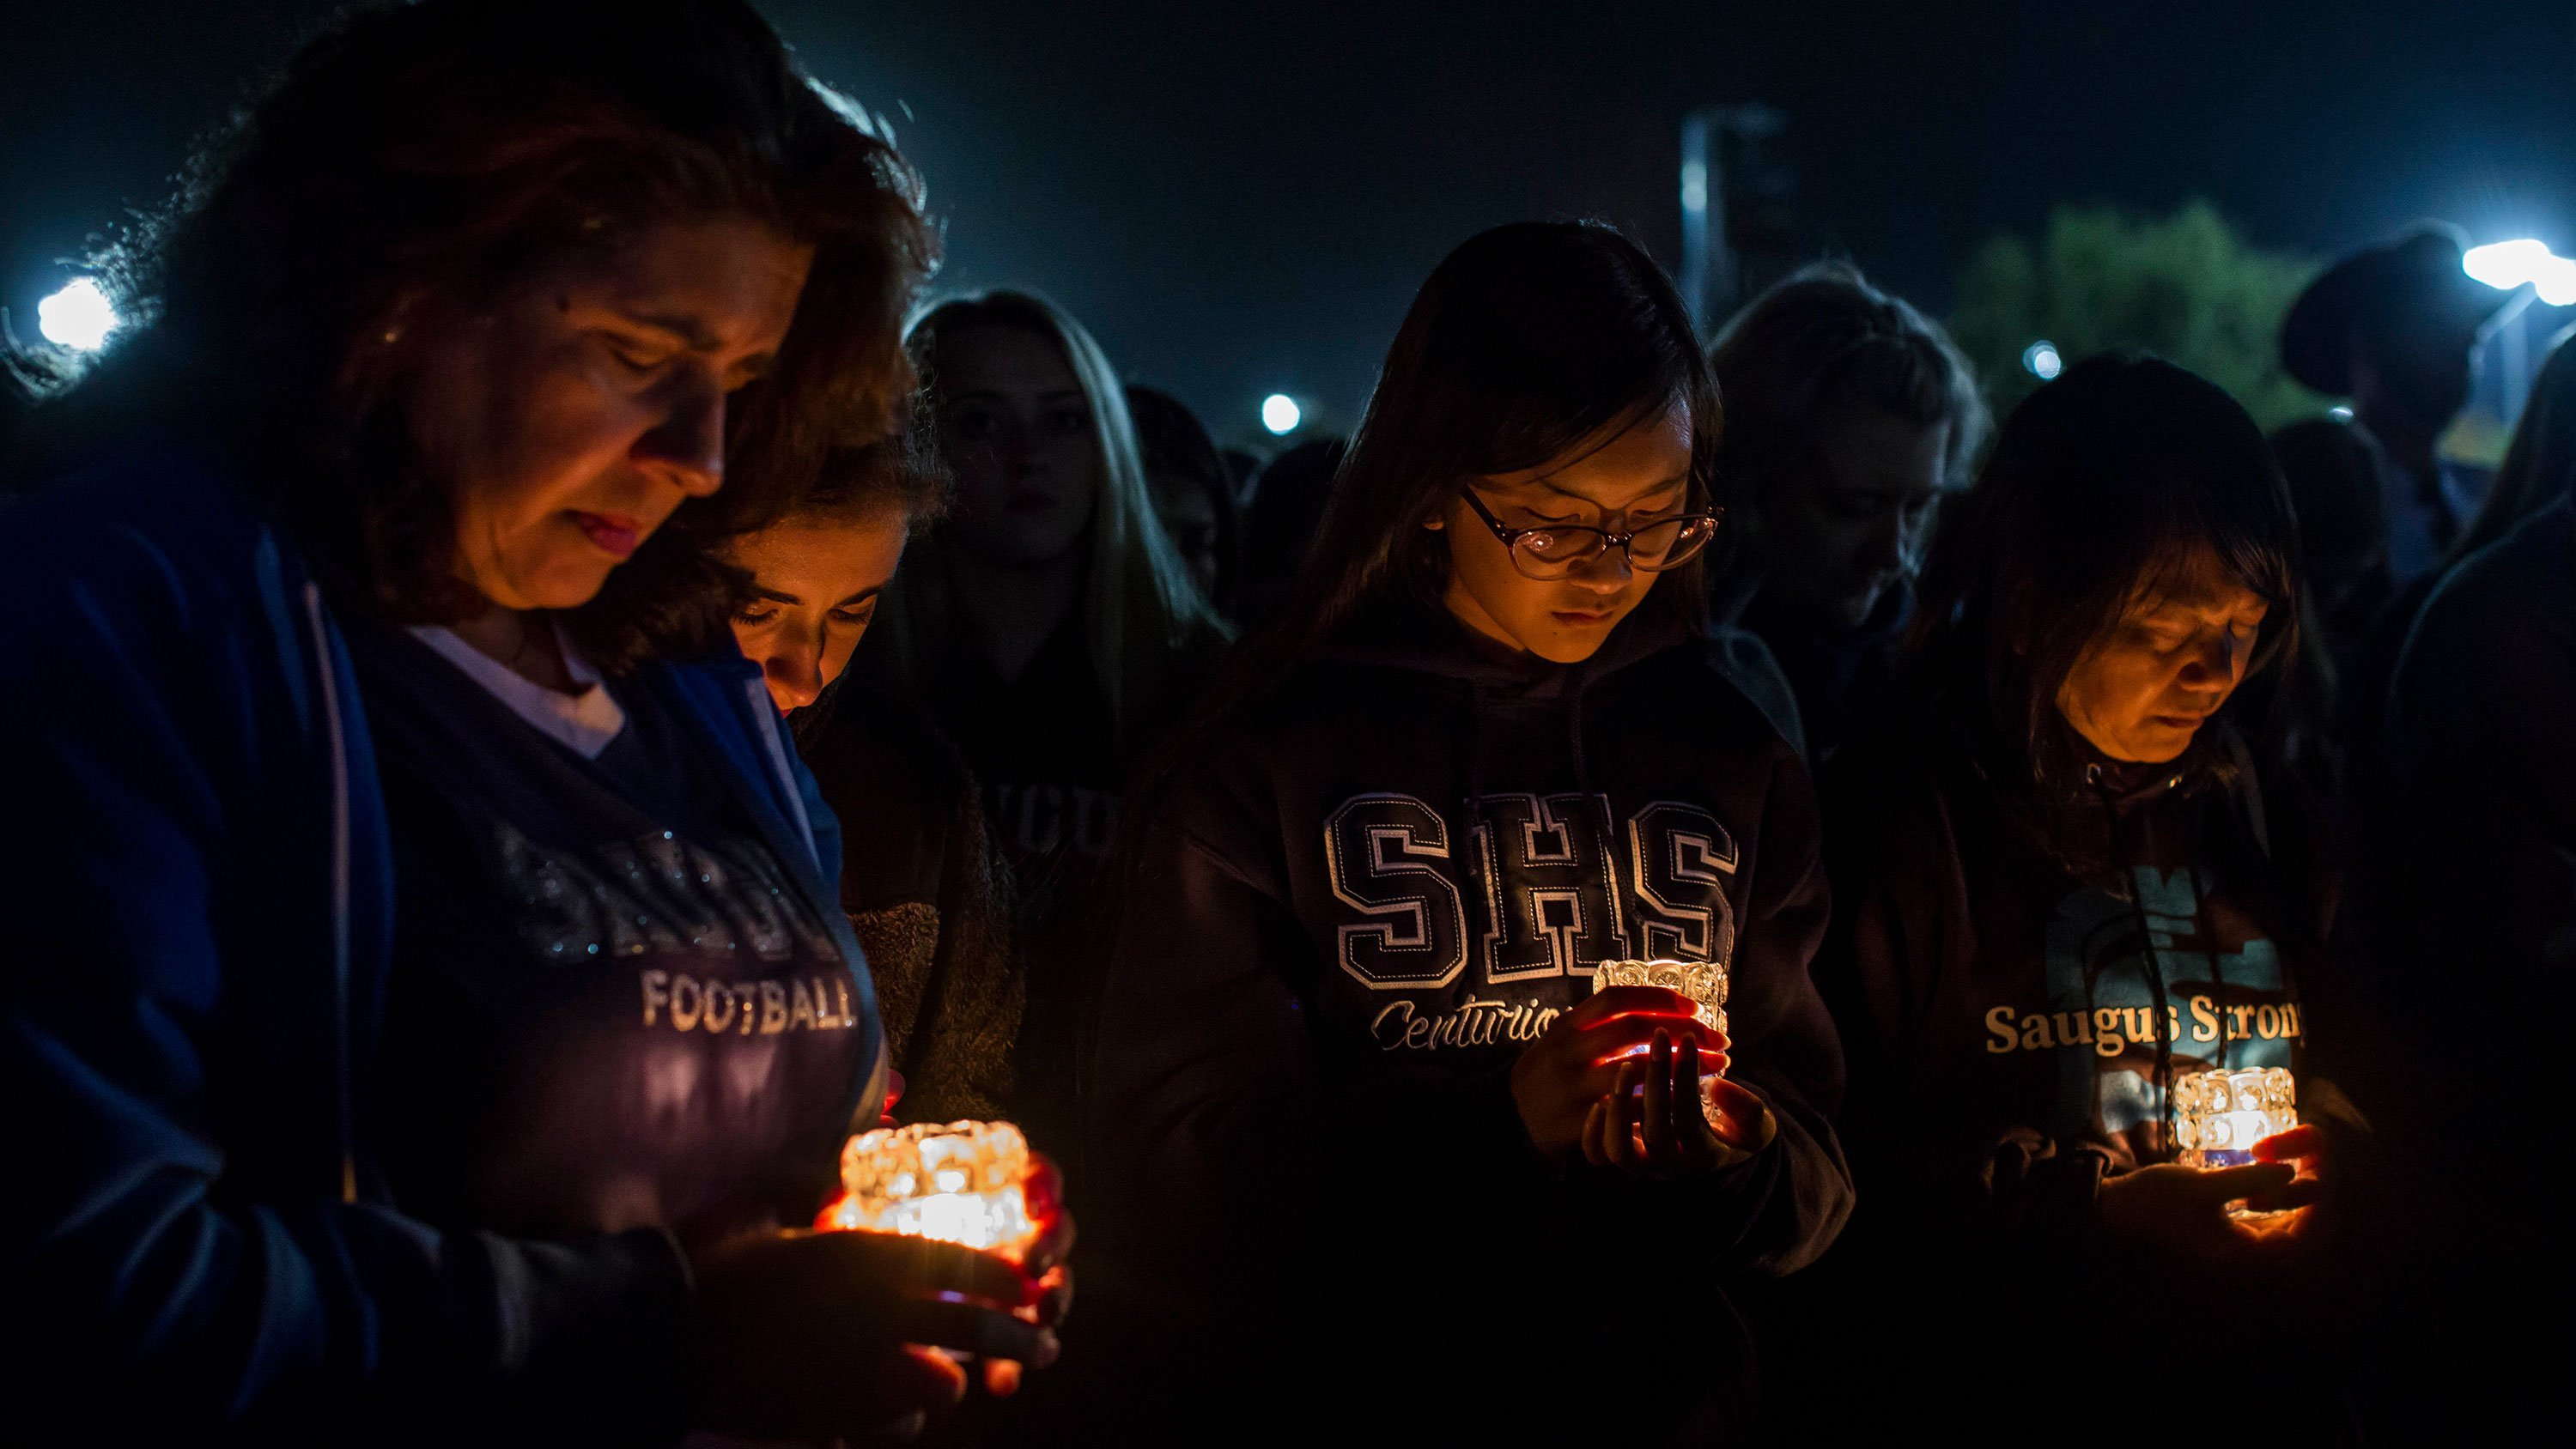 10,000 mourners honor the teens killed in the Santa Clarita school shooting